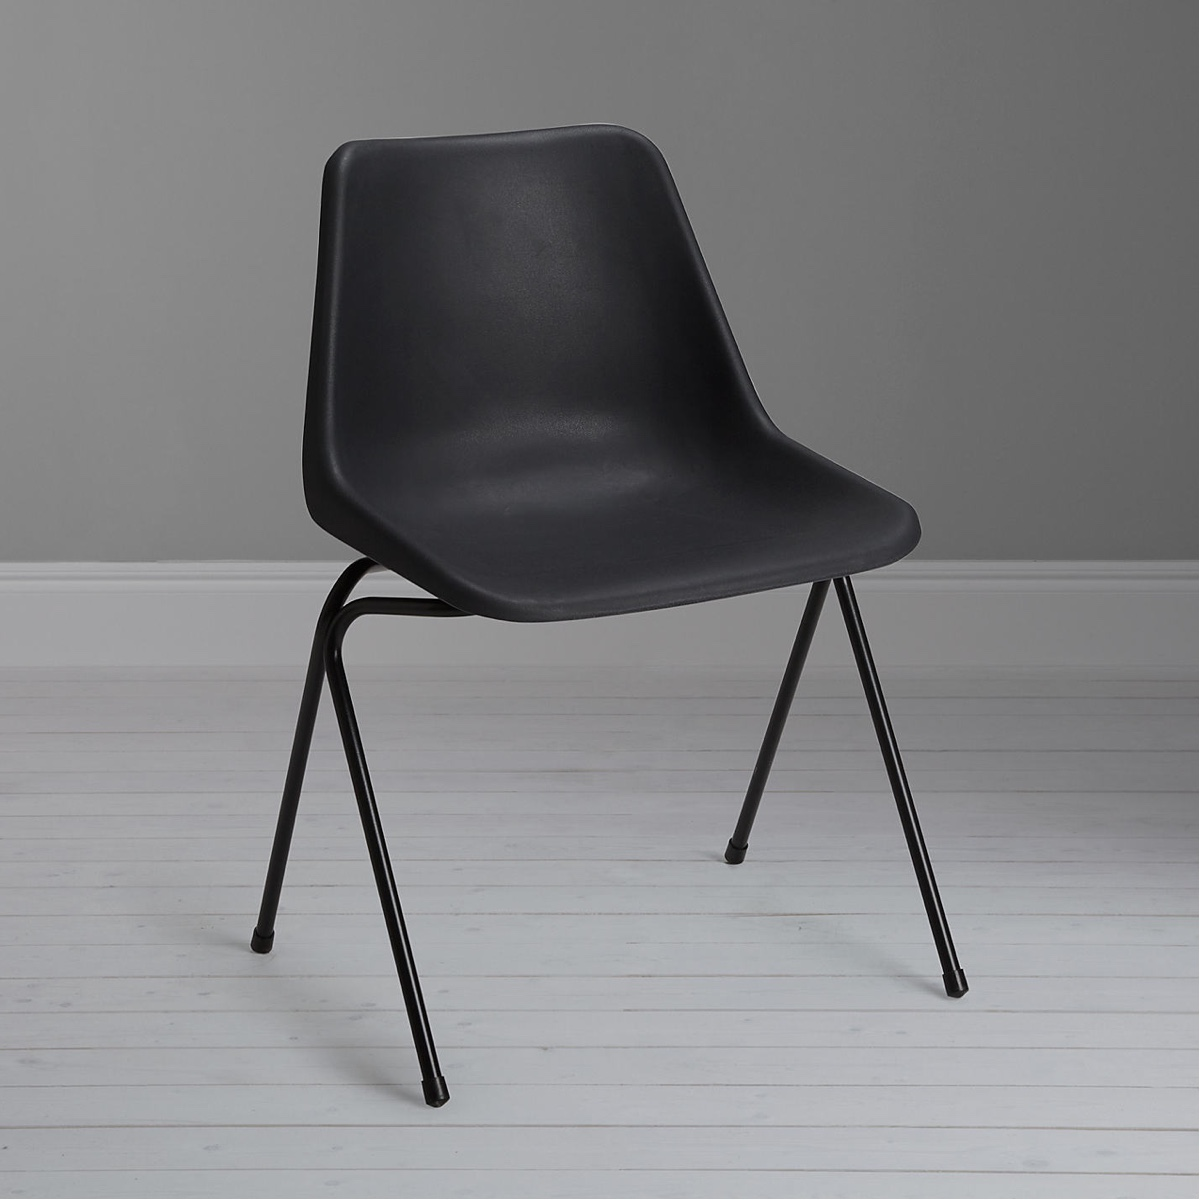 Polyside Chair in dark grey. Image © John Lewis Partnership.